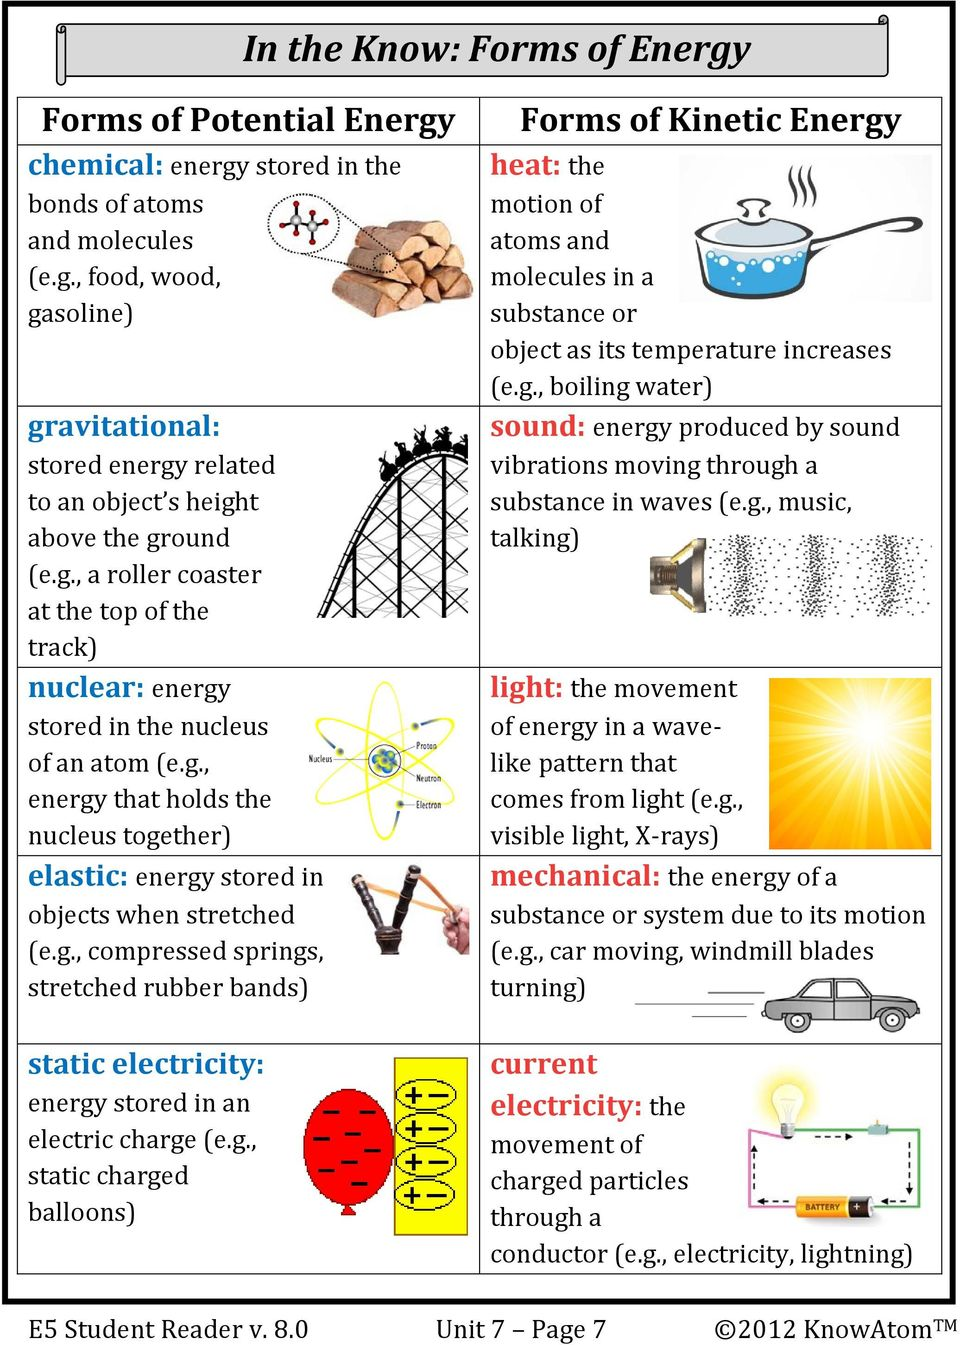 g., static charged balloons) Forms of Kinetic Energy heat: the motion of atoms and molecules in a substance or object as its temperature increases (e.g., boiling water) sound: energy produced by sound vibrations moving through a substance in waves (e.